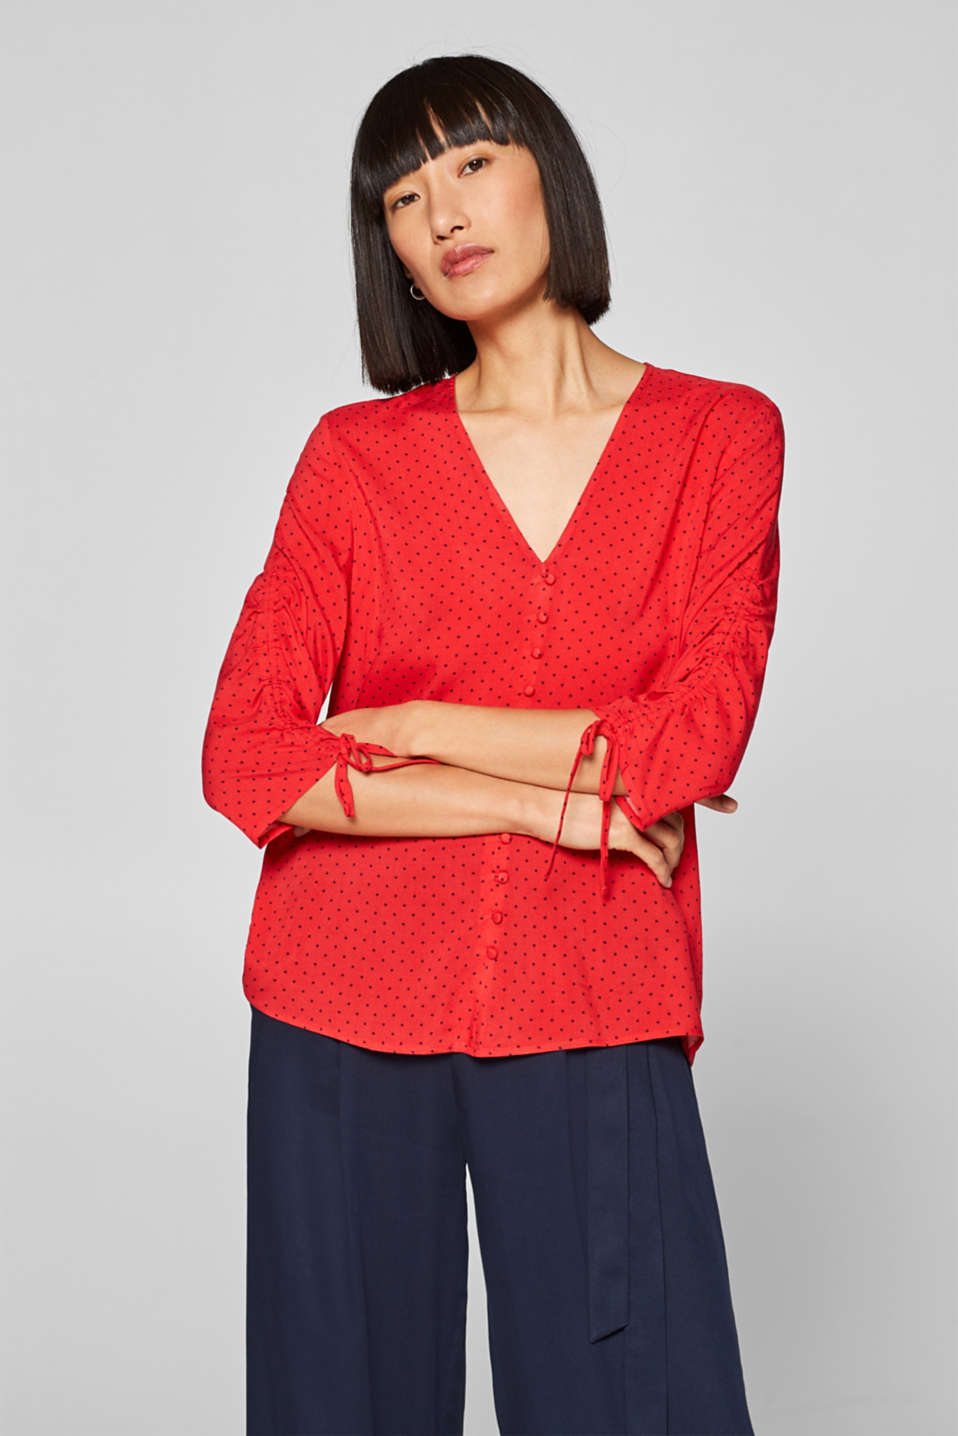 Esprit - Polka dot blouse with gathers and a hem flounce